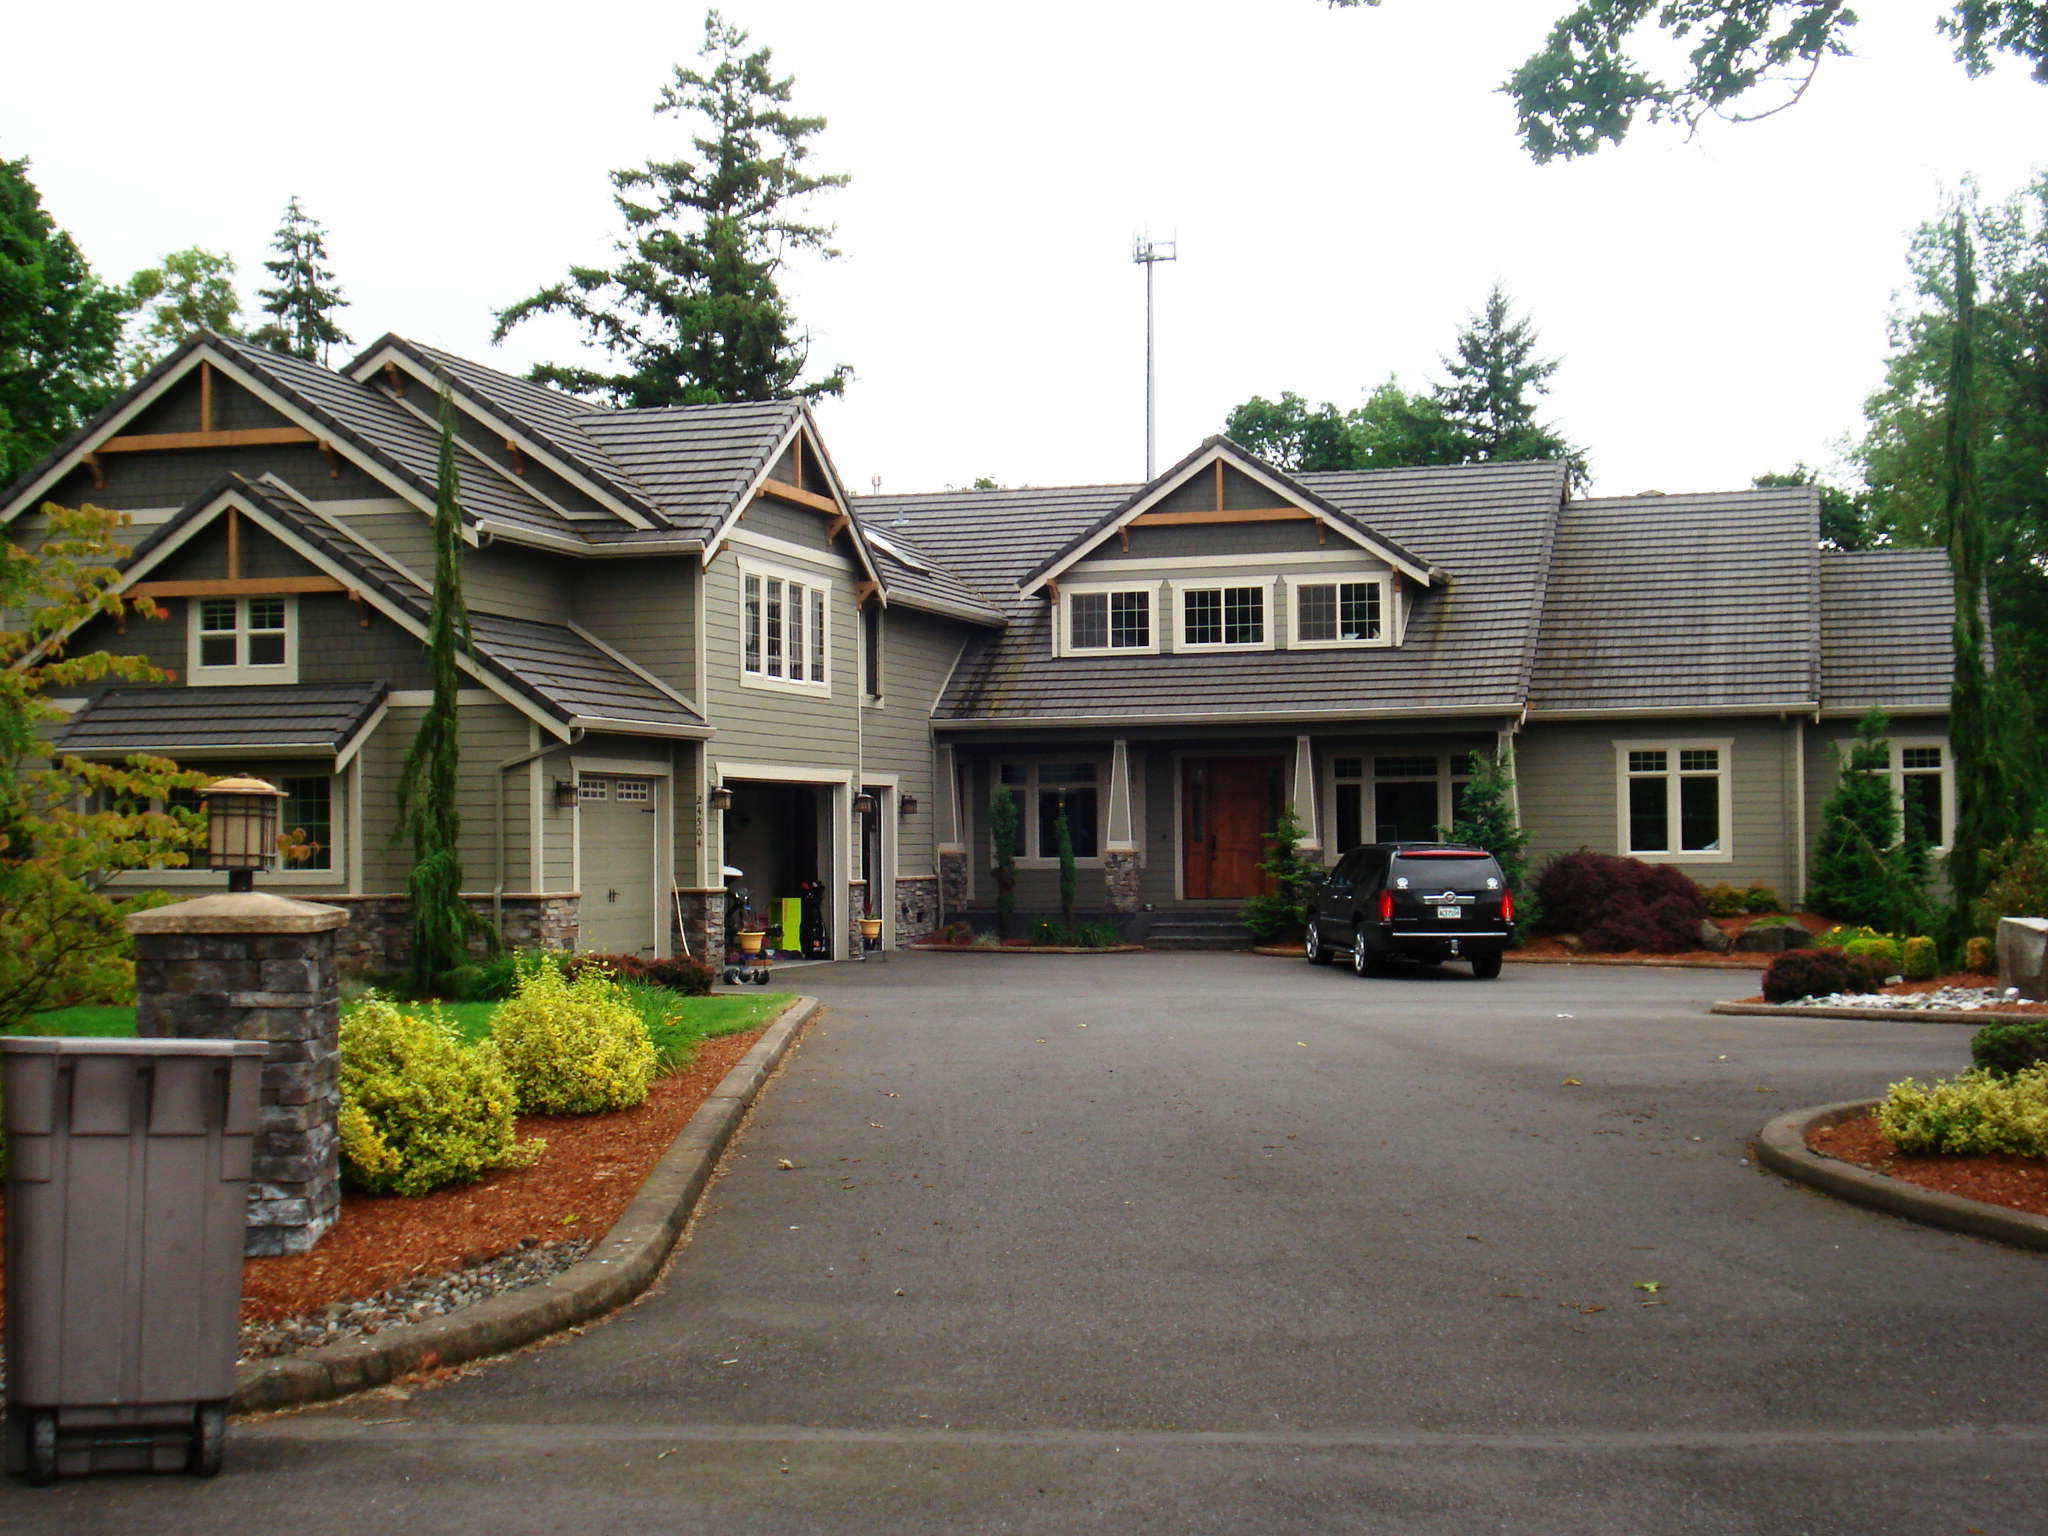 Chateau Style Luxury Estates at Gee Creek, 24504 NW 4th Court, Ridgefield, WA 98642